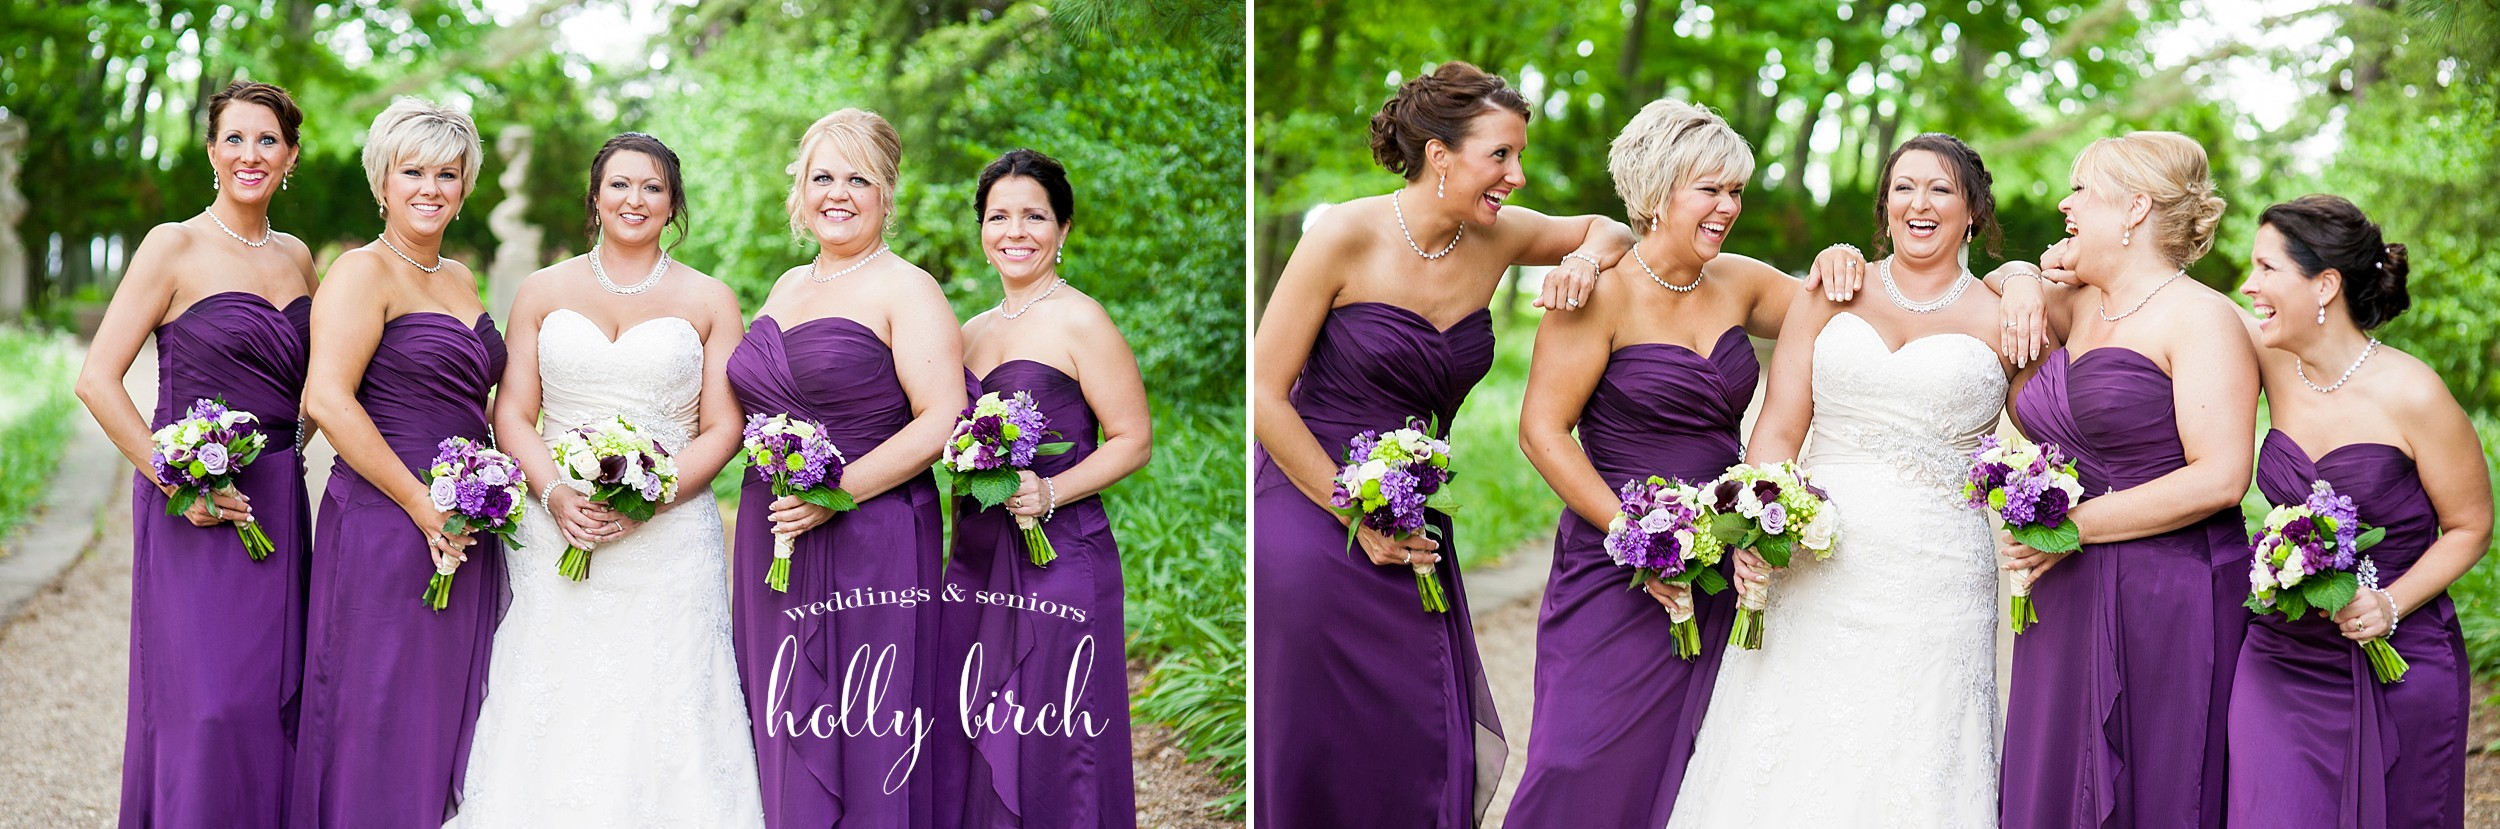 bridesmaids purple dresses